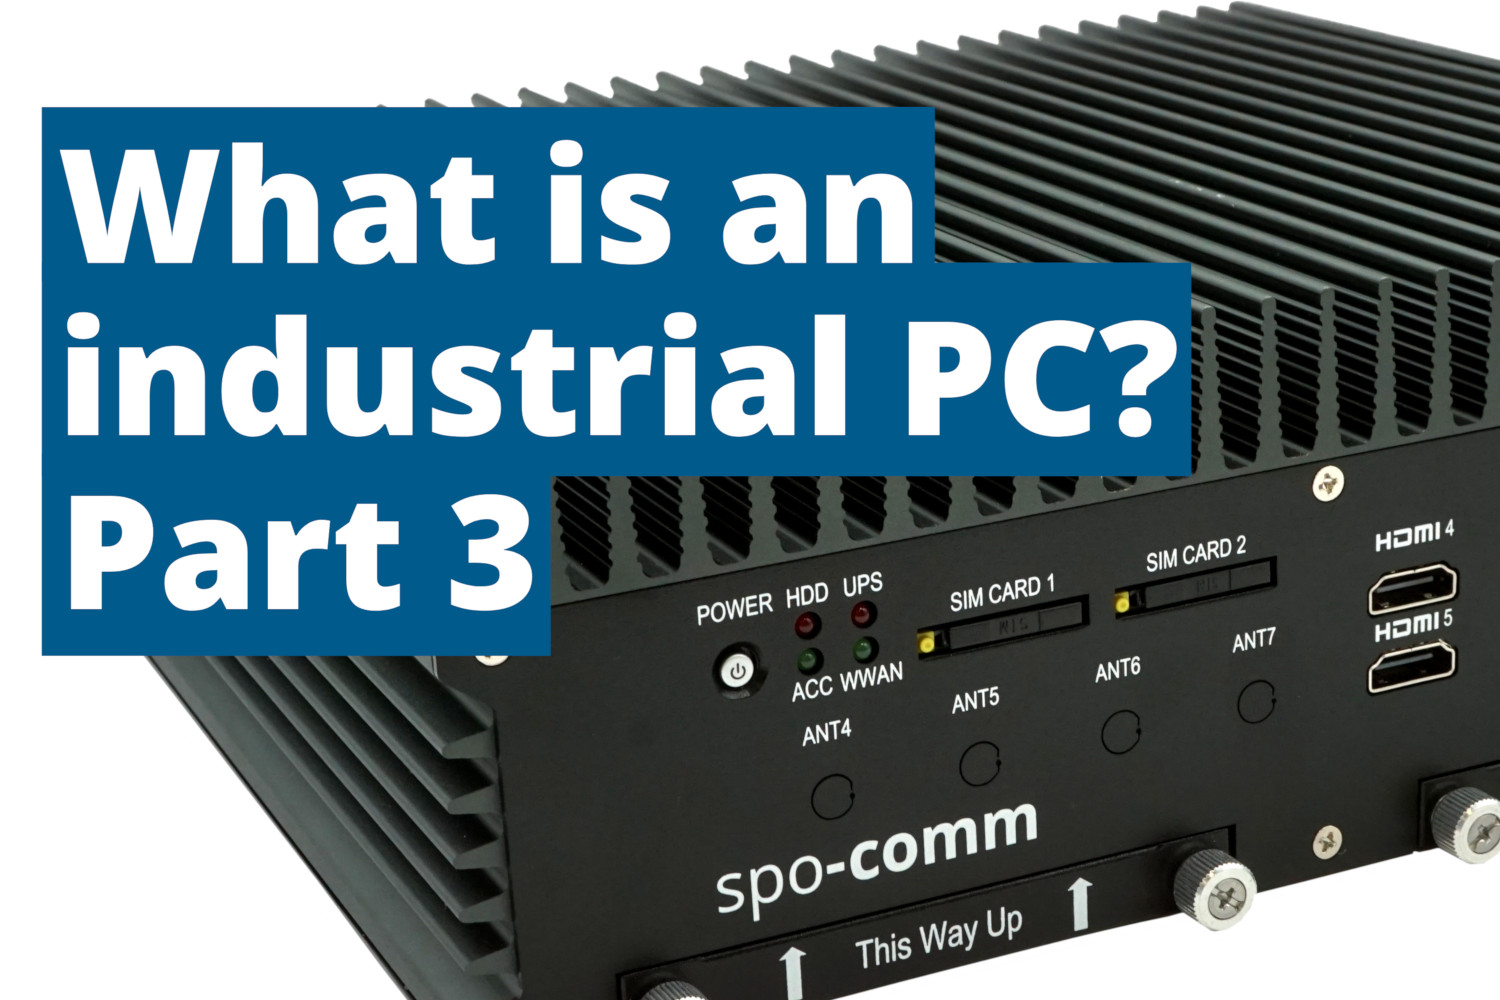 Industrial PCs part 3: The standard and extended range of temperature